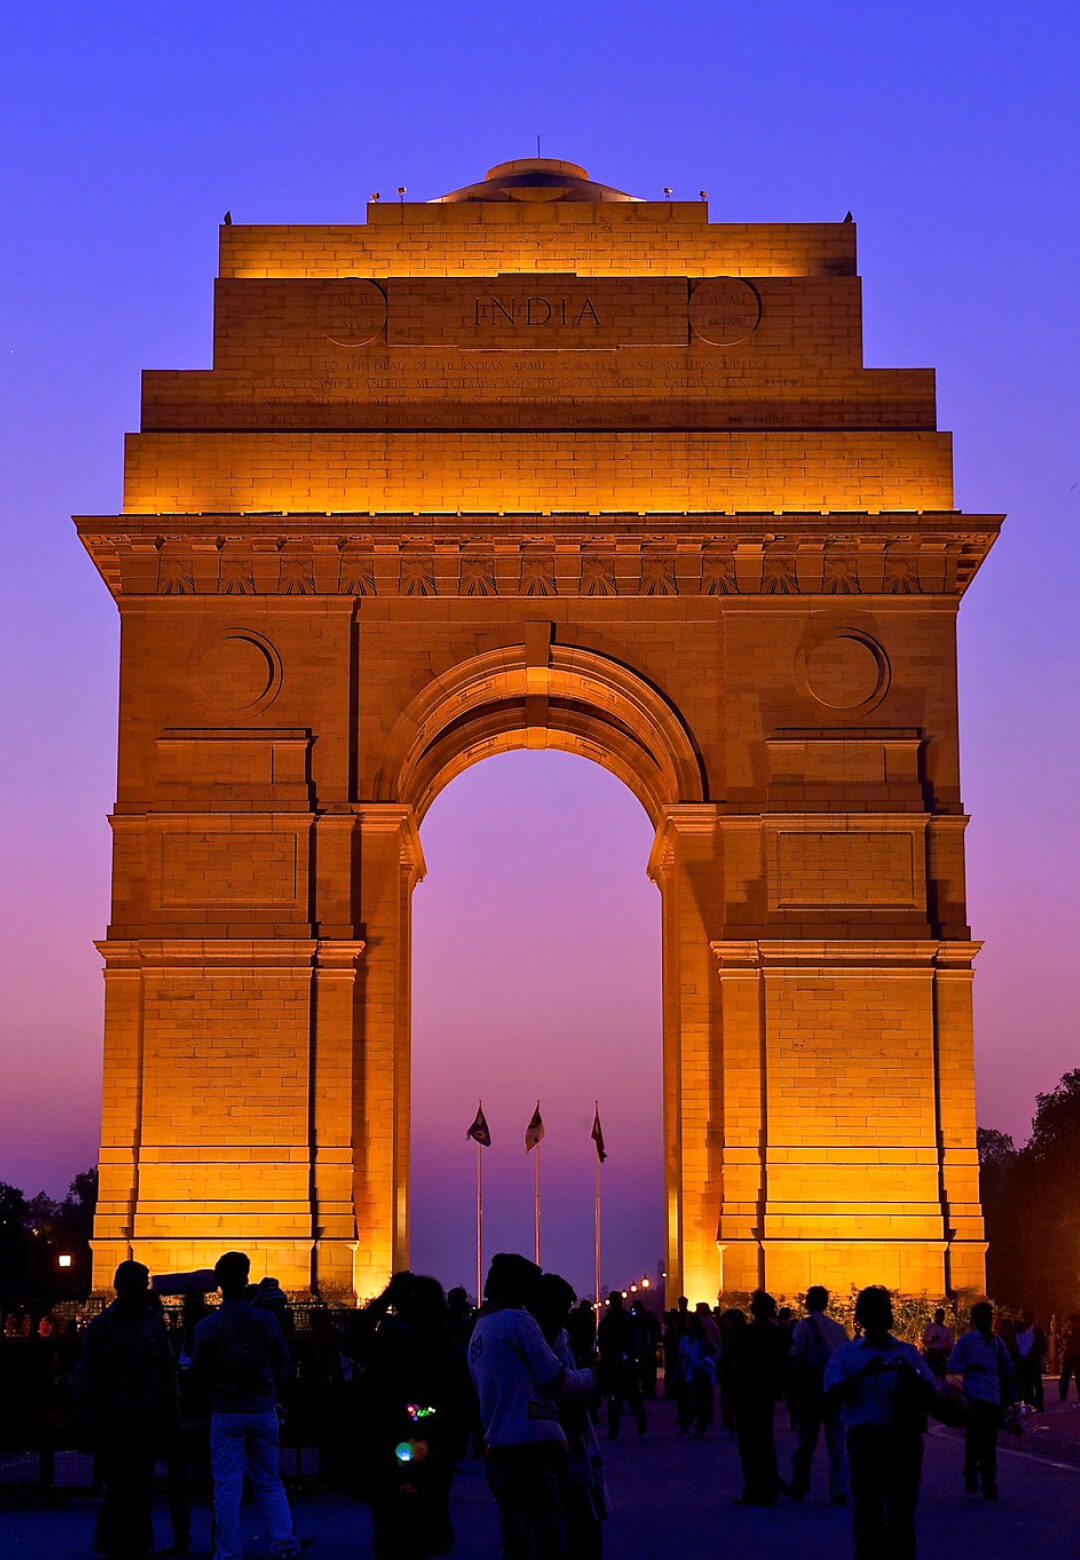 India Gate in Delhi, India built by English architect Sir Edwin Lutyens | Edwin Lutyens | STIRworld